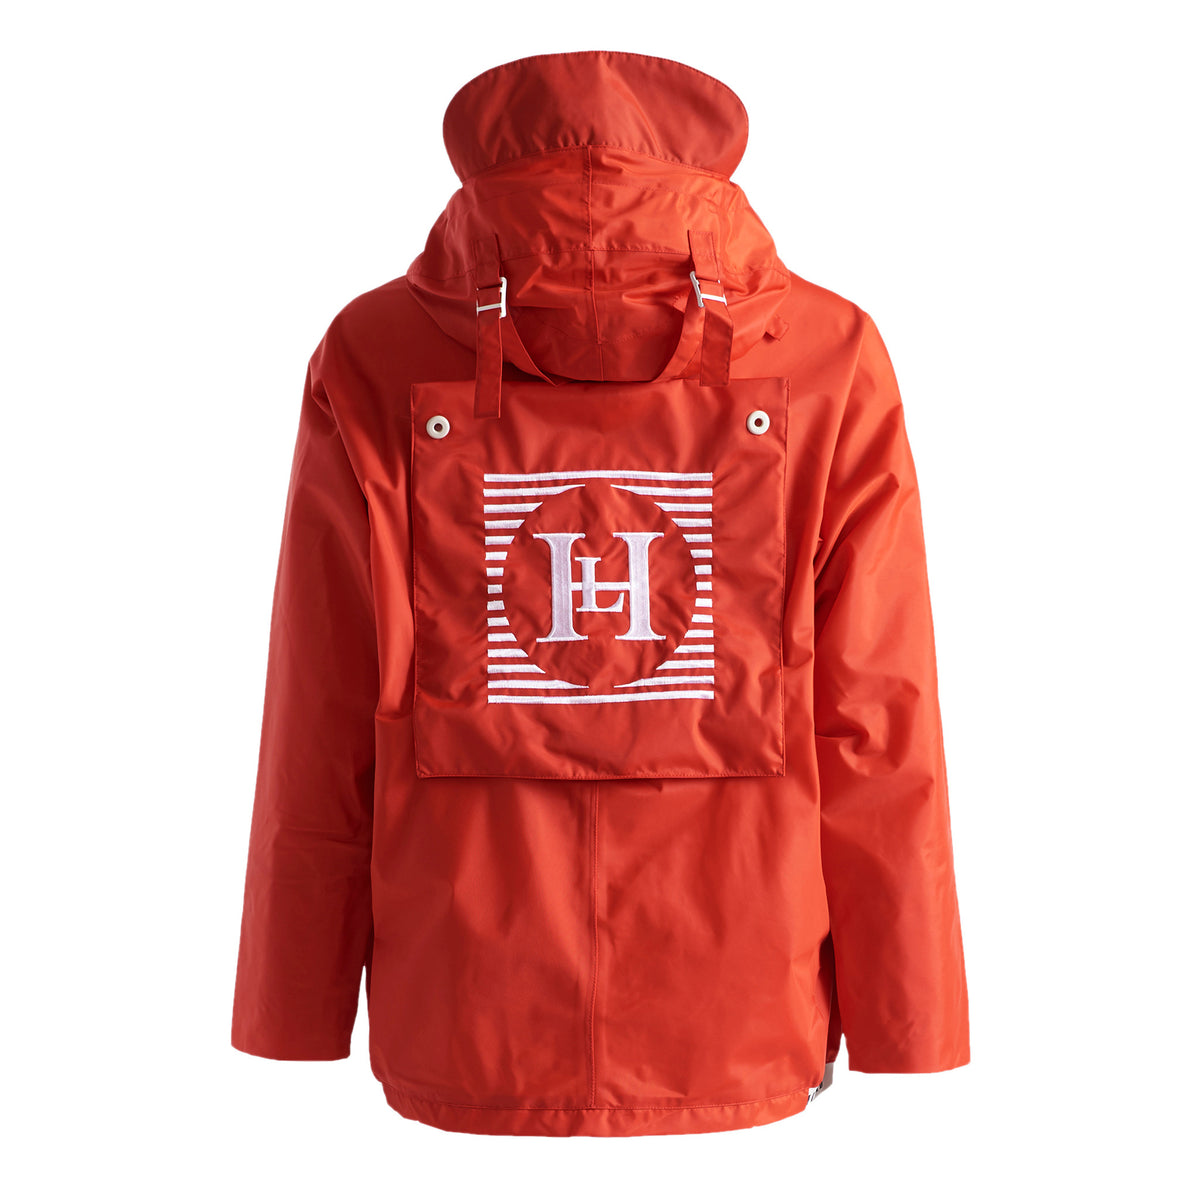 Henri Lloyd X Nigel Cabourn Waterproof Spray Jacket Old Red Back